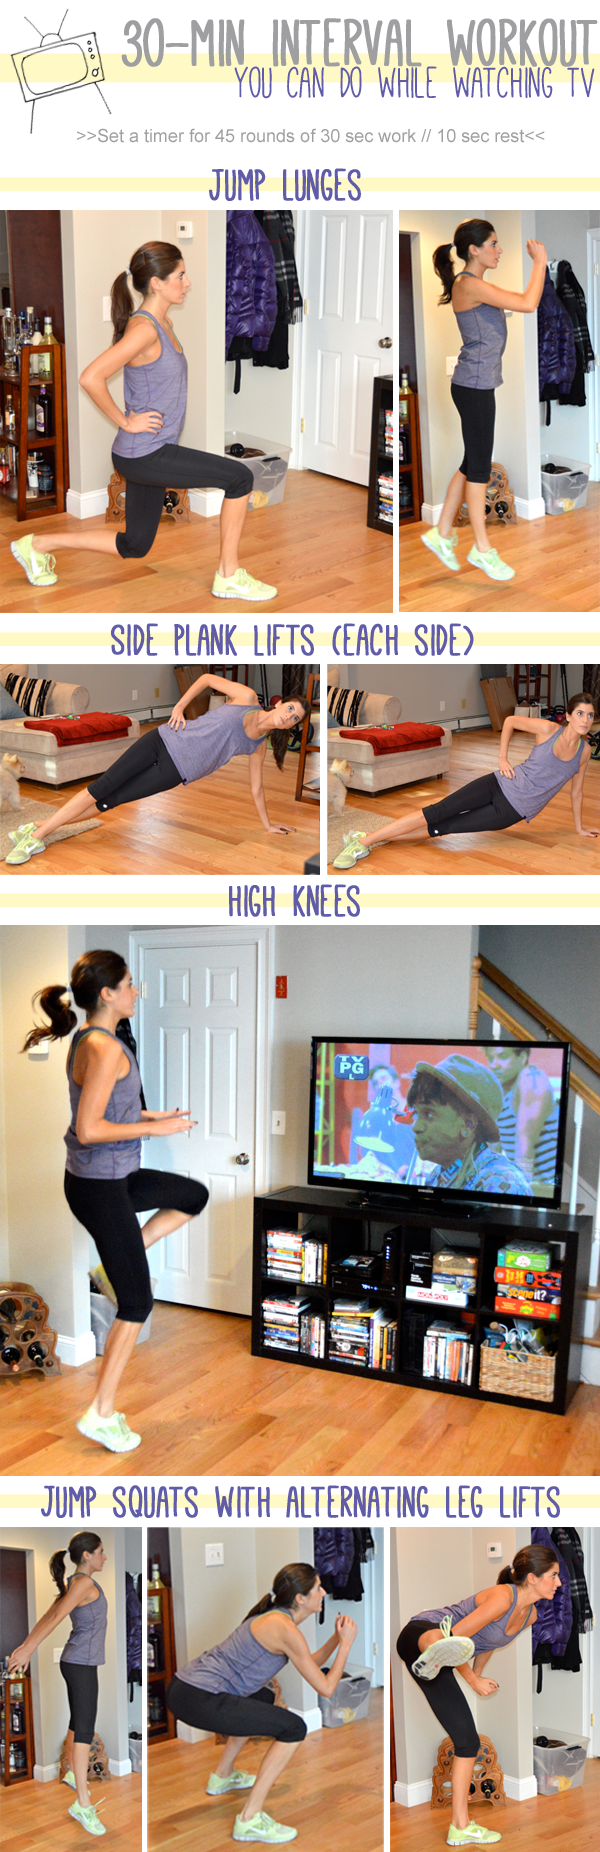 30-minute Interval Workout You Can Do While Watching TV